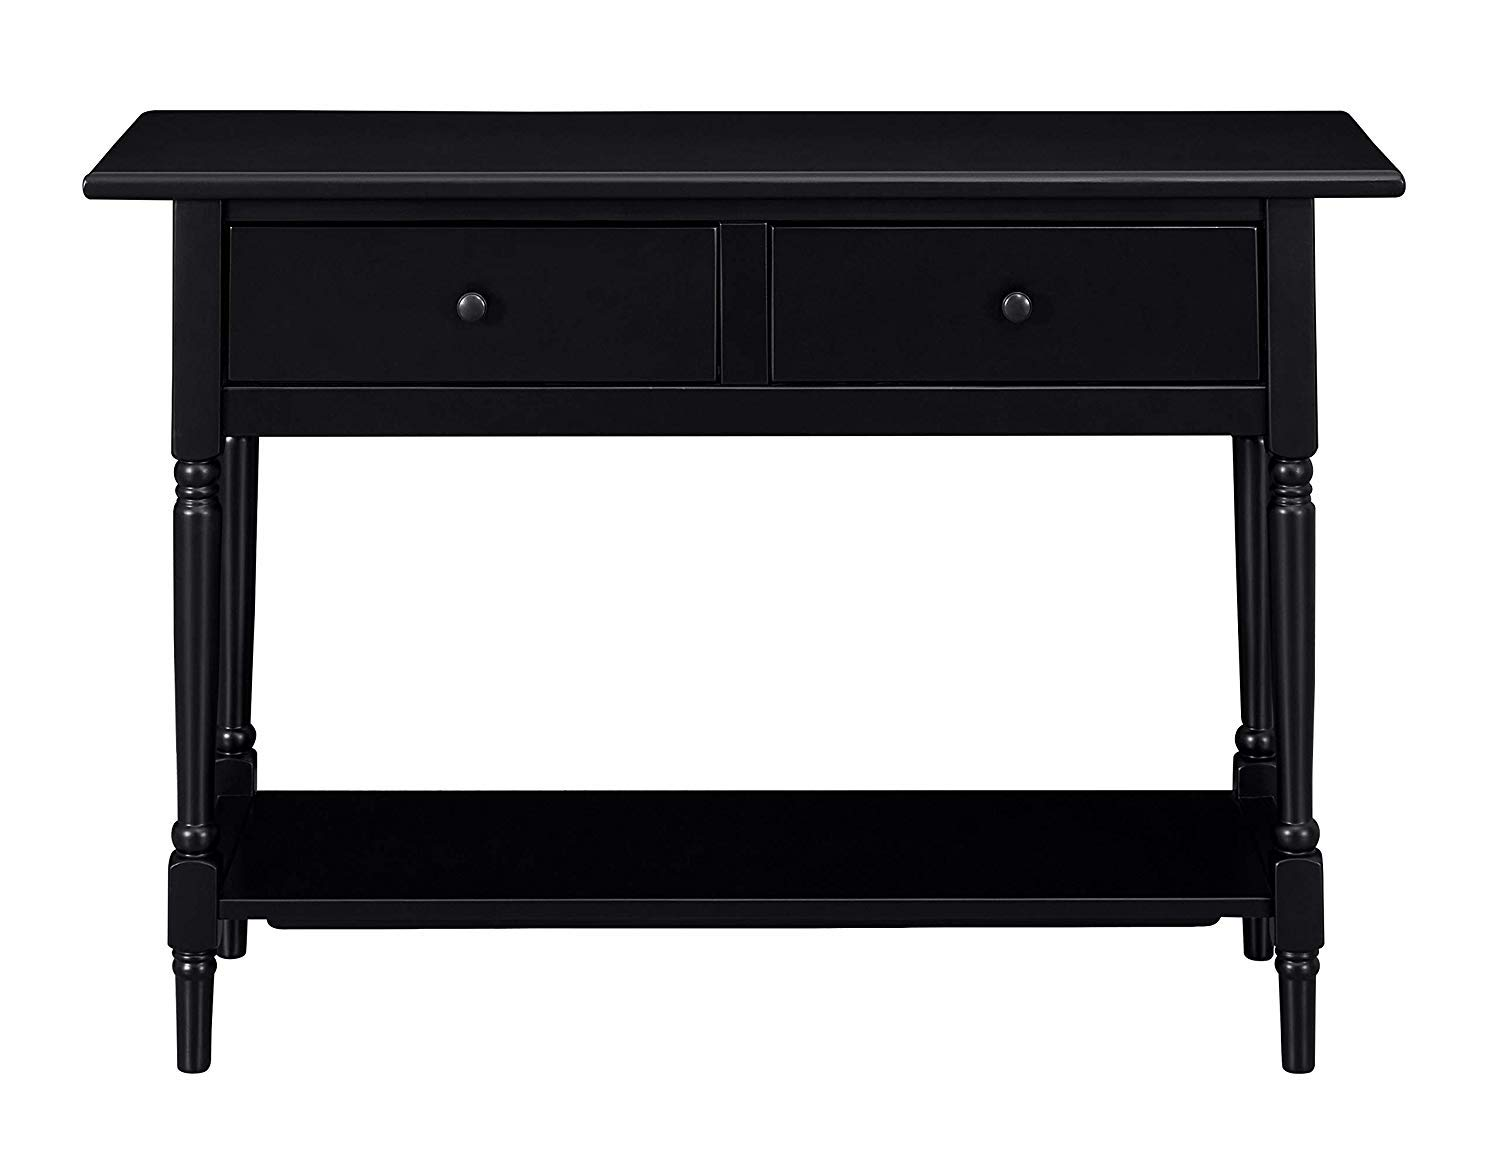 Frenchi Furniture Cherry 3-Tier Crescent ,Half Moon ,Hall Console Table End Table